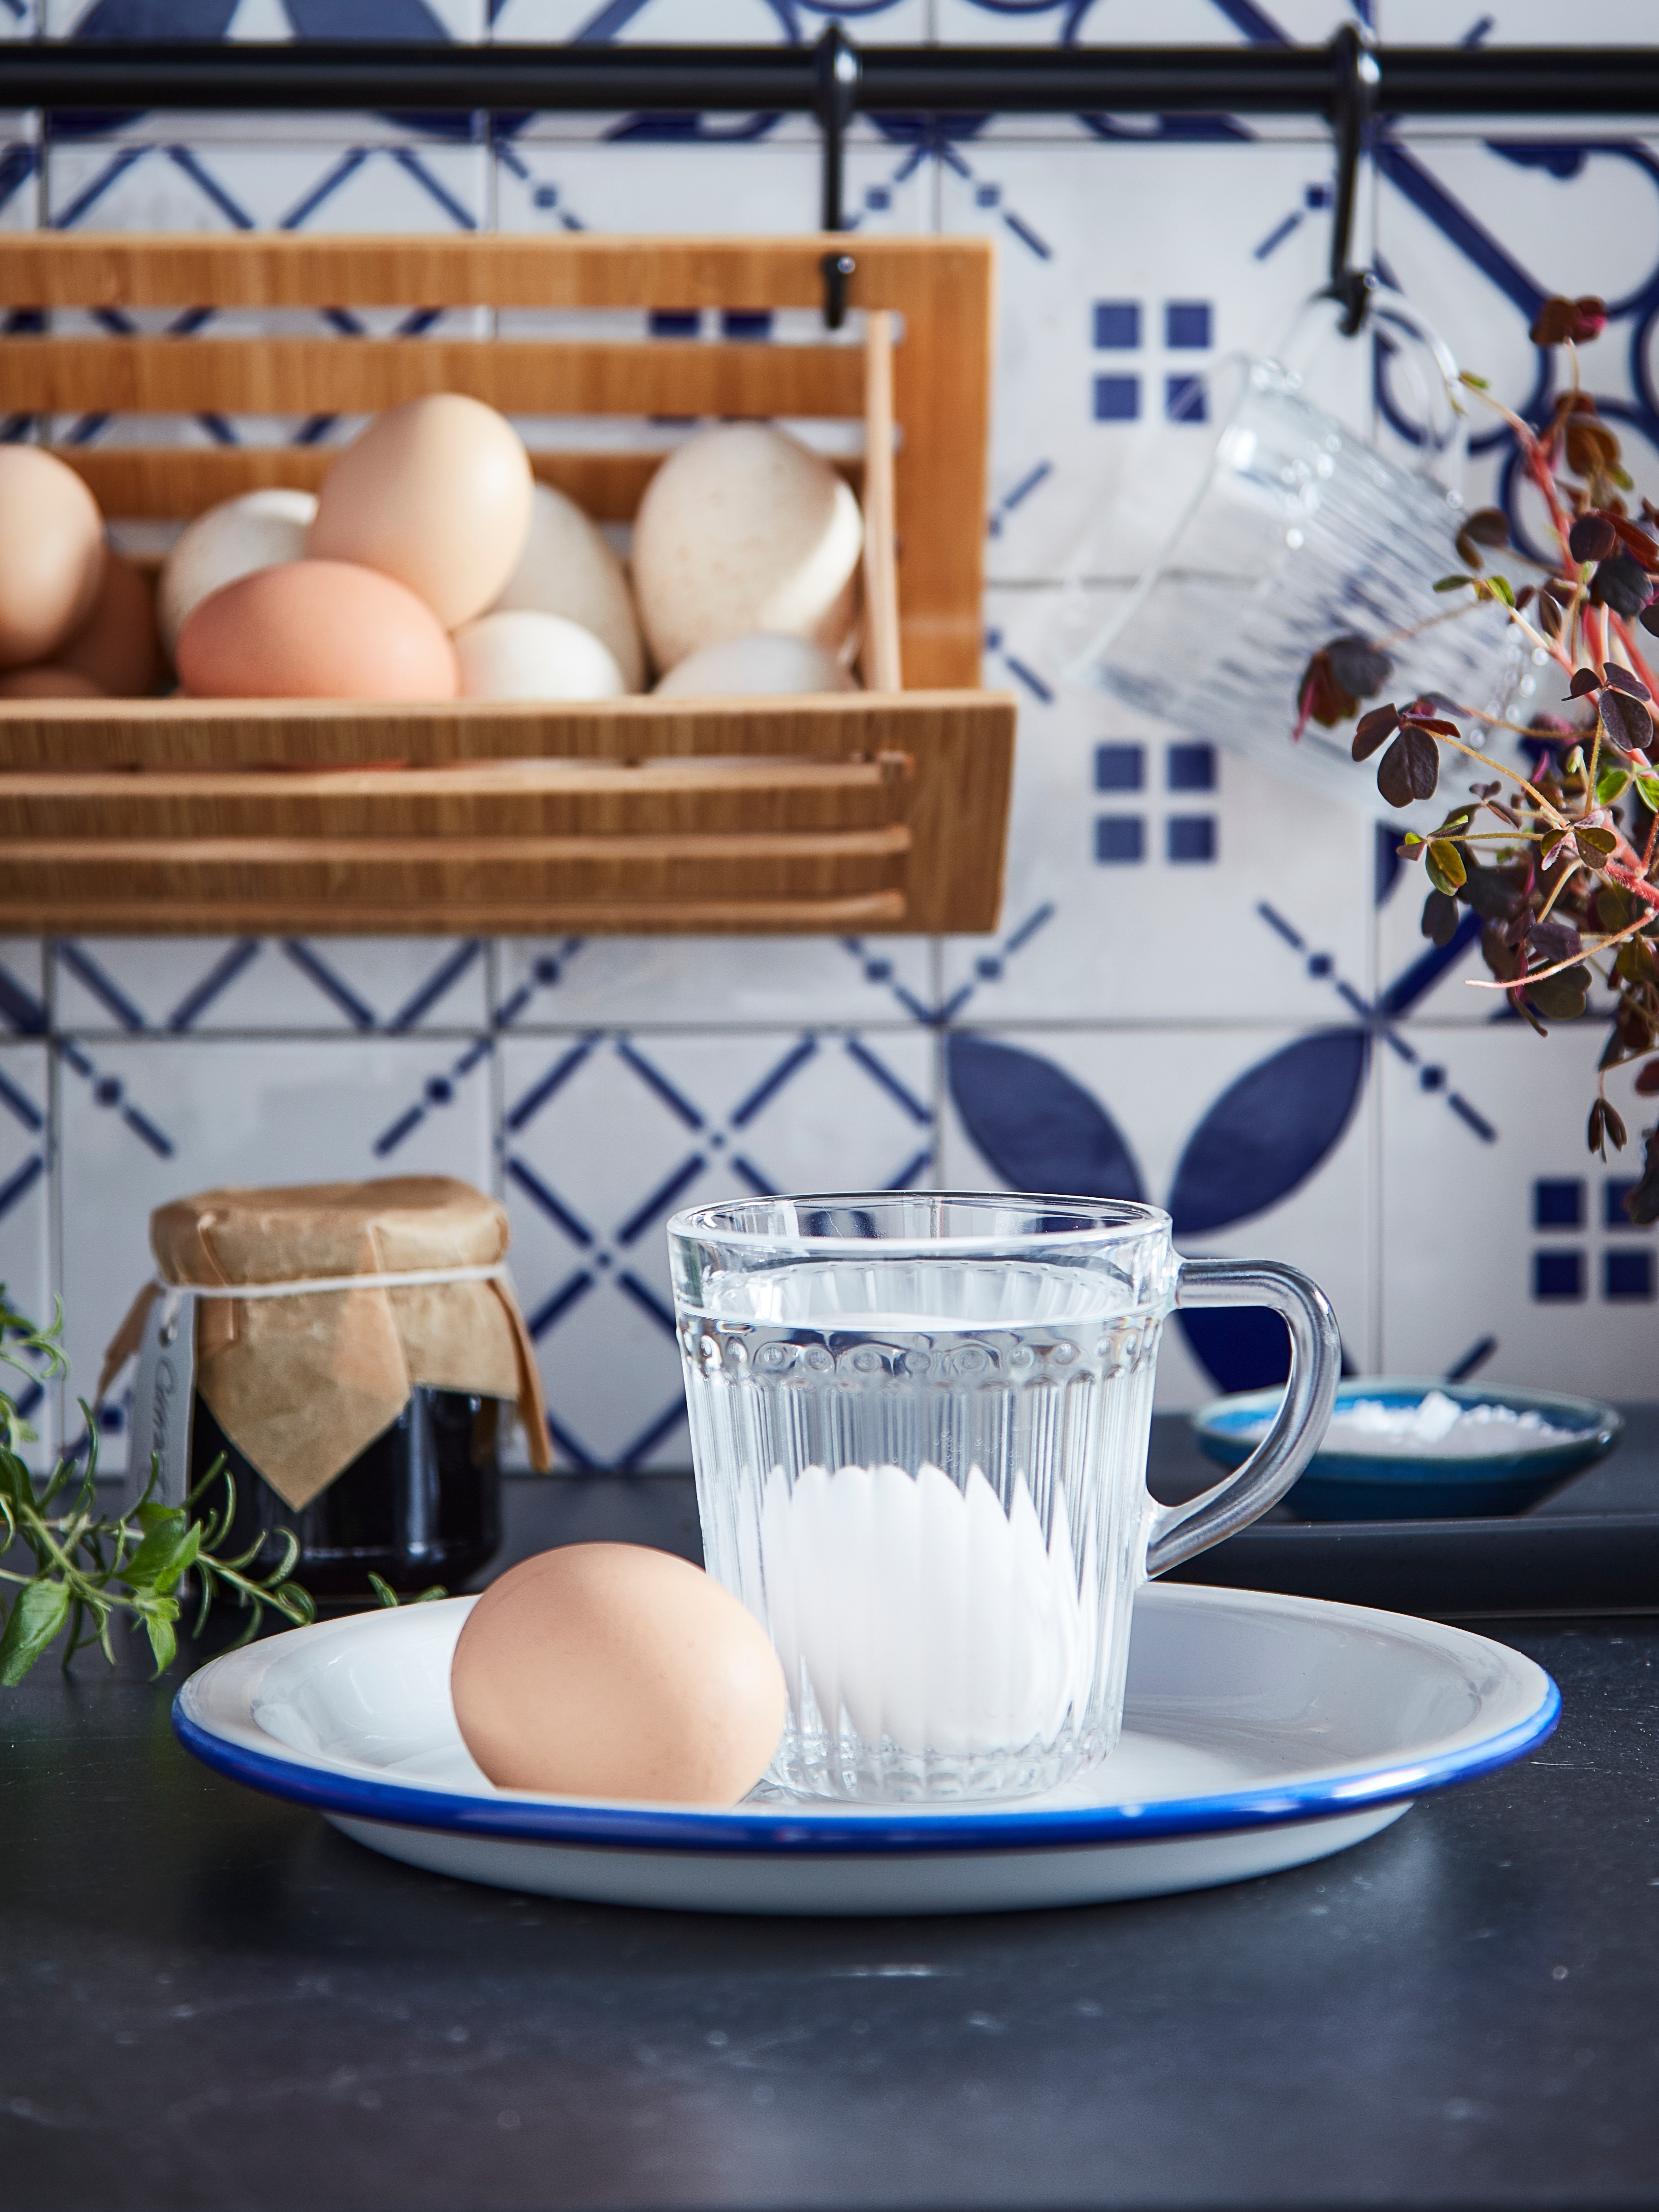 Close-up of a DRÖMBILD mug in clear glass with an egg inside, sitting on a blue and white plate on a kitchen countertop.